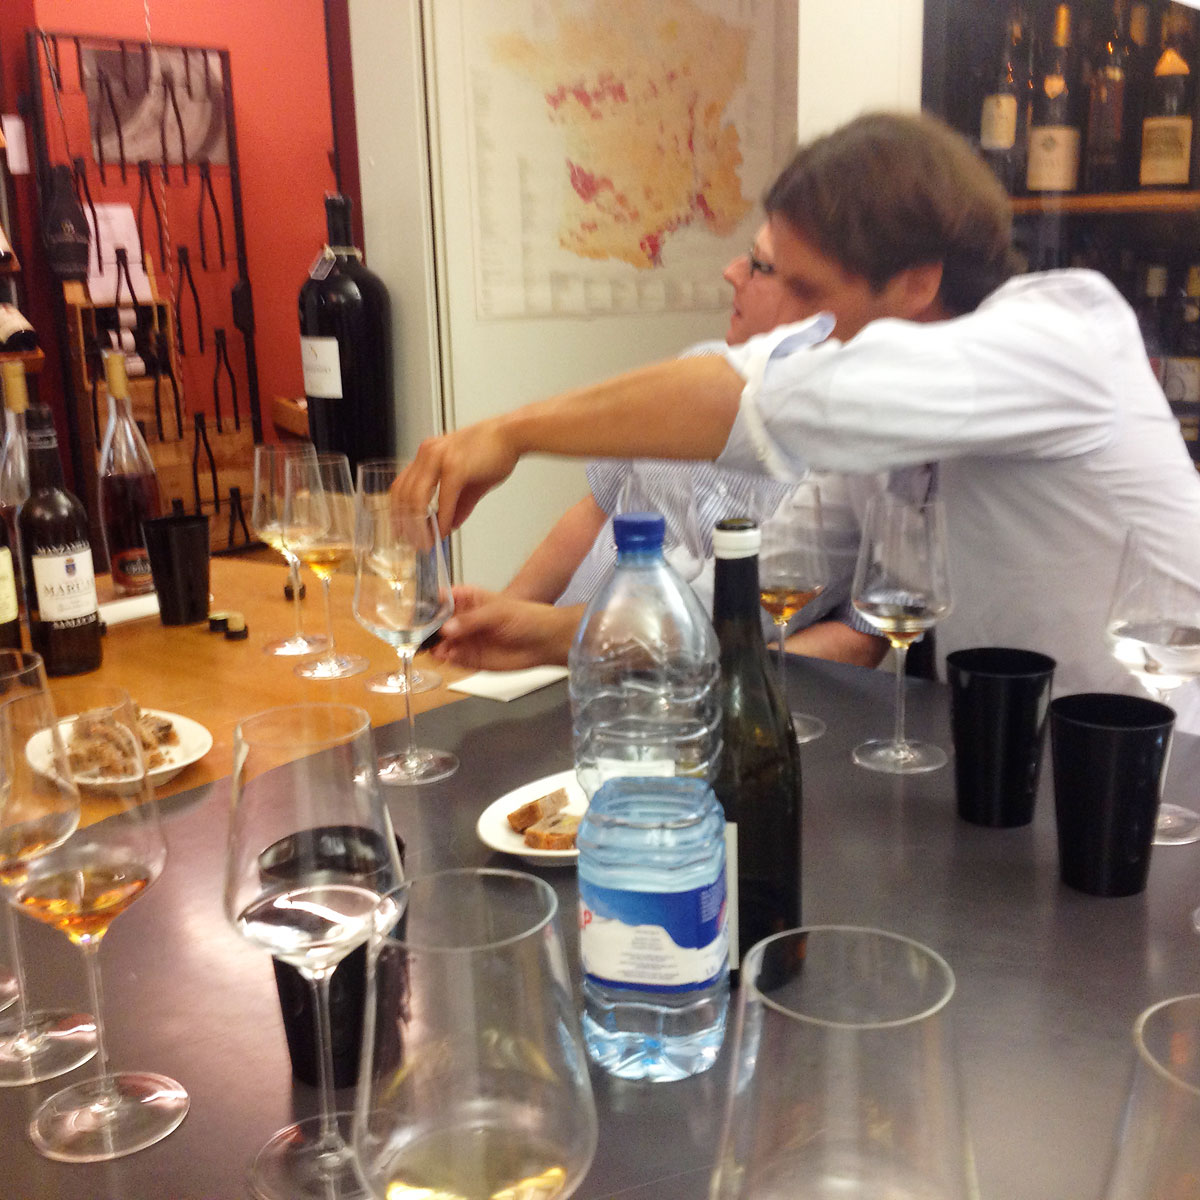 20150828 - Friends of Sherry Degustation 01